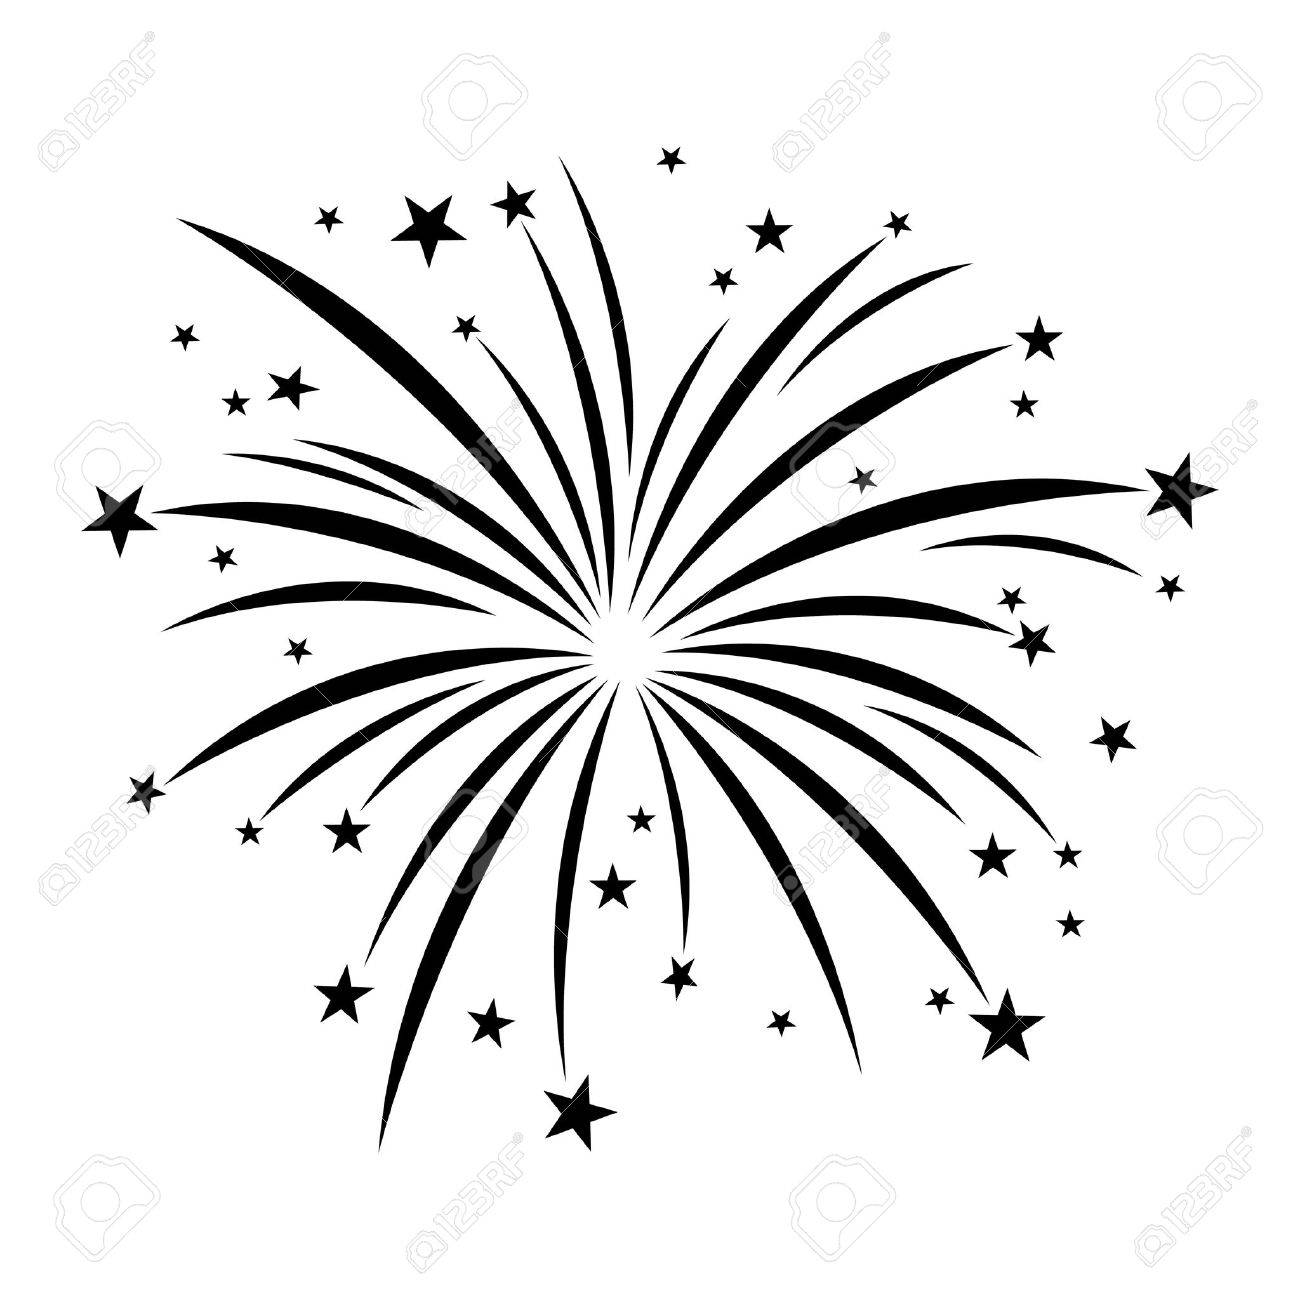 firework drawing at getdrawings com free for personal use firework rh getdrawings com